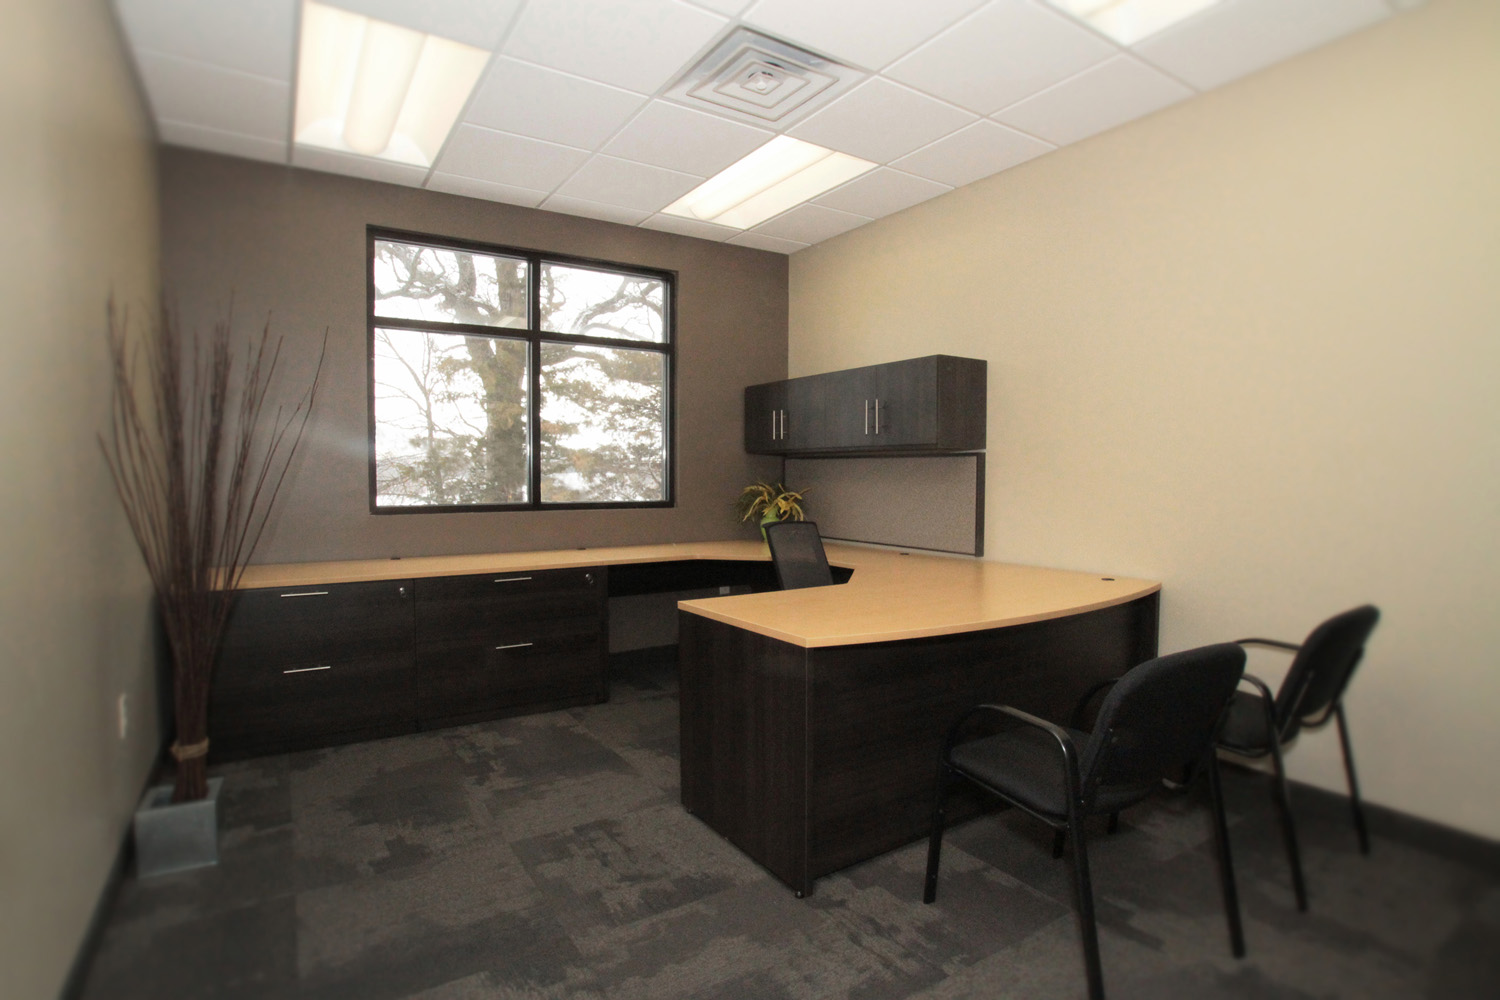 Office space design mankato new used office for Small company office design